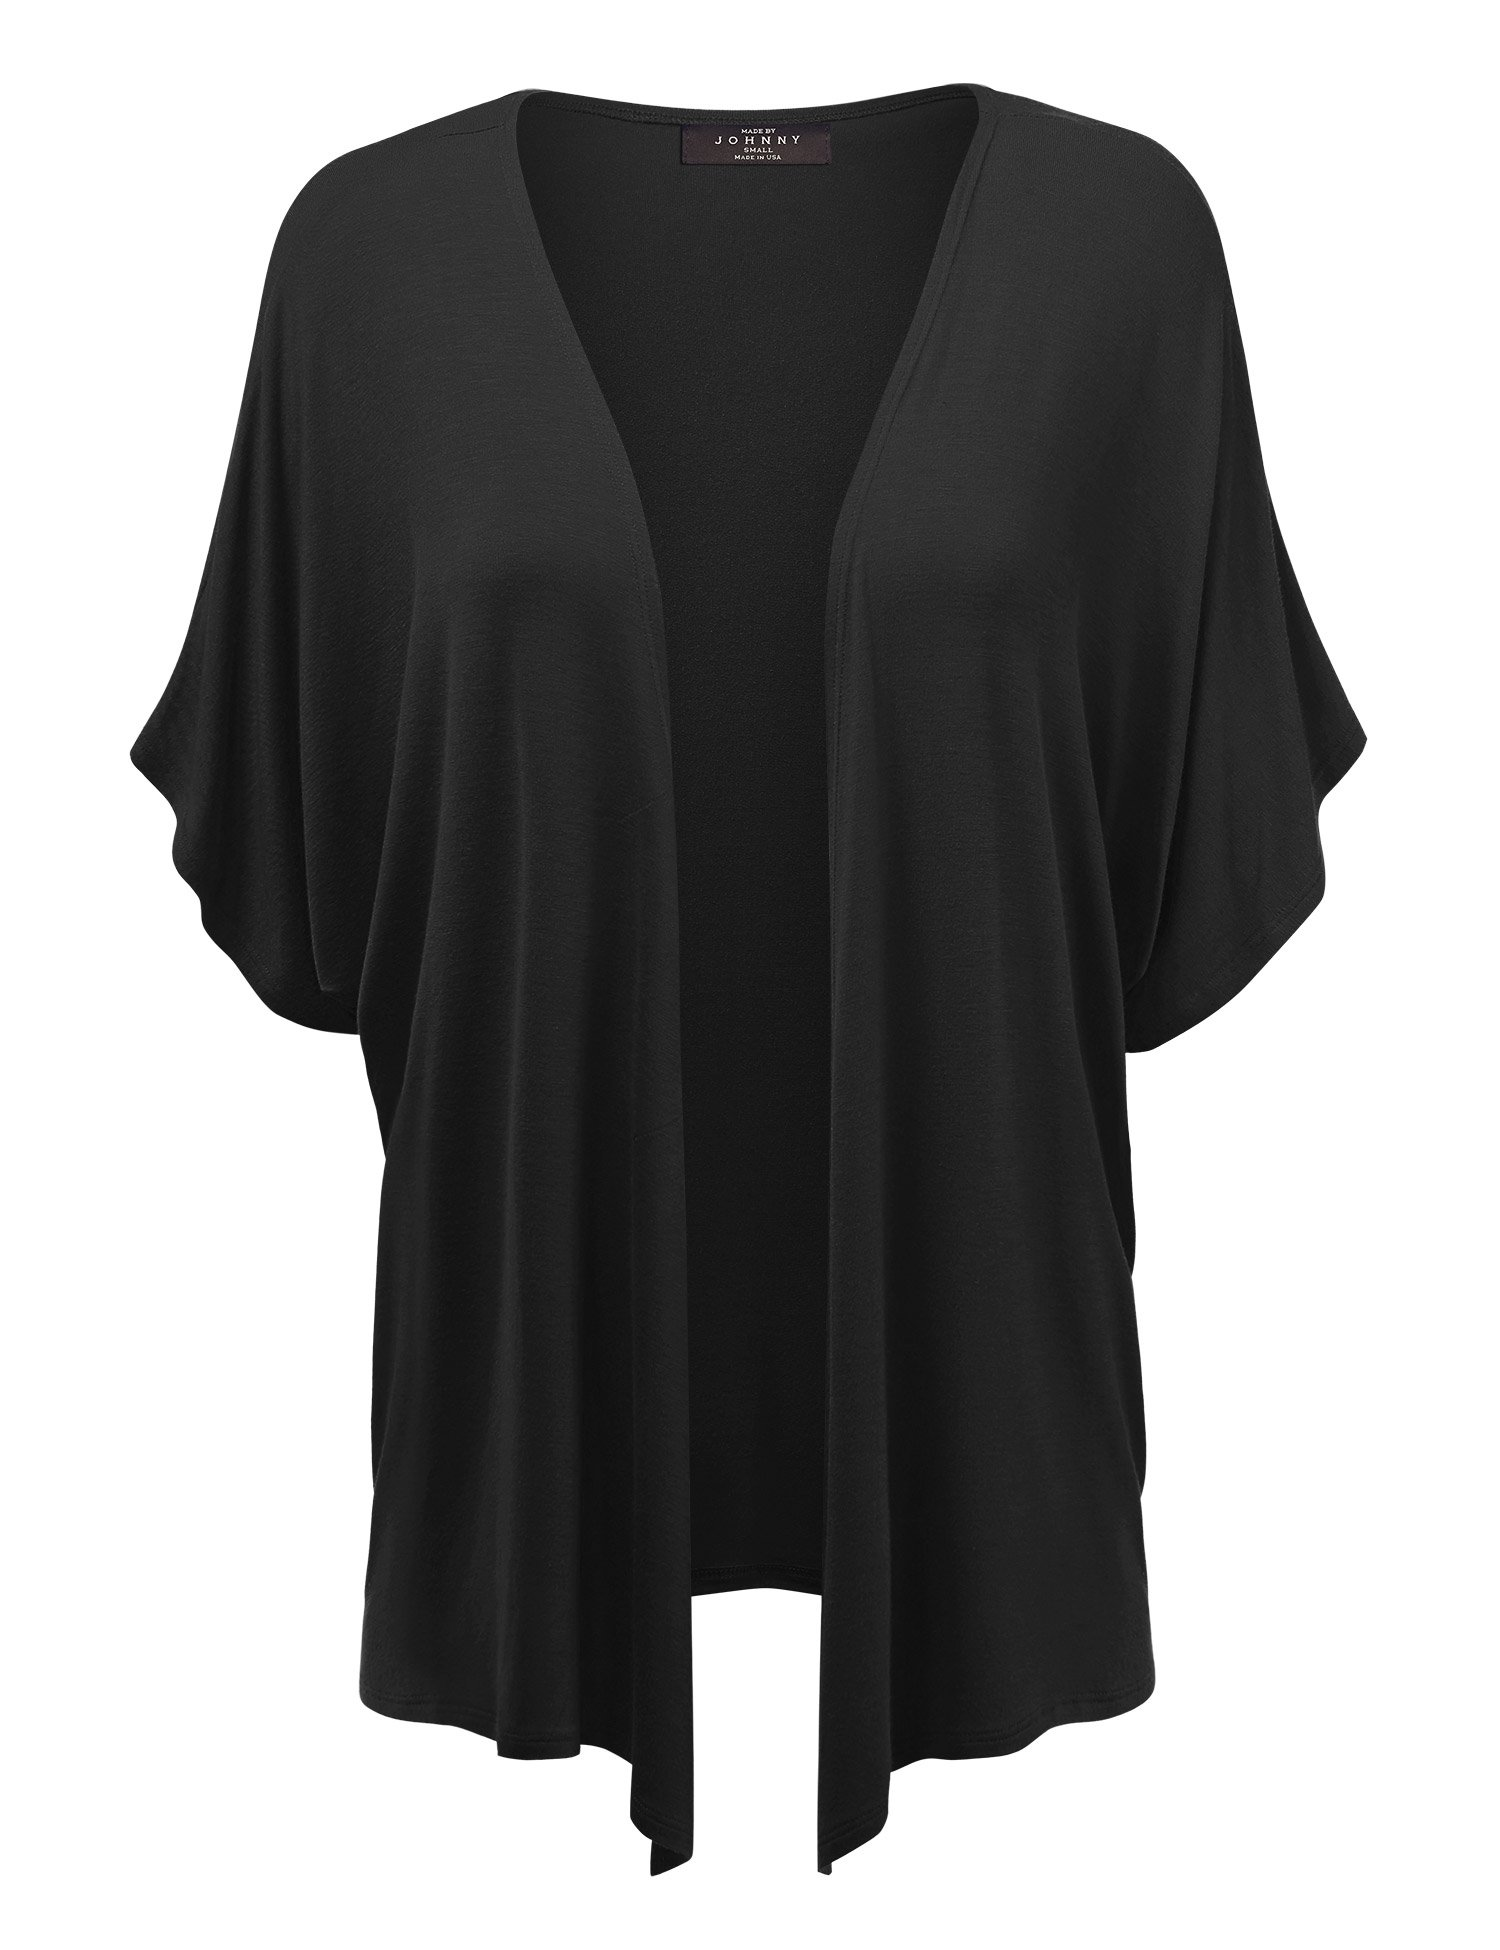 Made By Johnny MBJ Womens Short Sleeve Dolman Cardigan XXXL Black by Made By Johnny